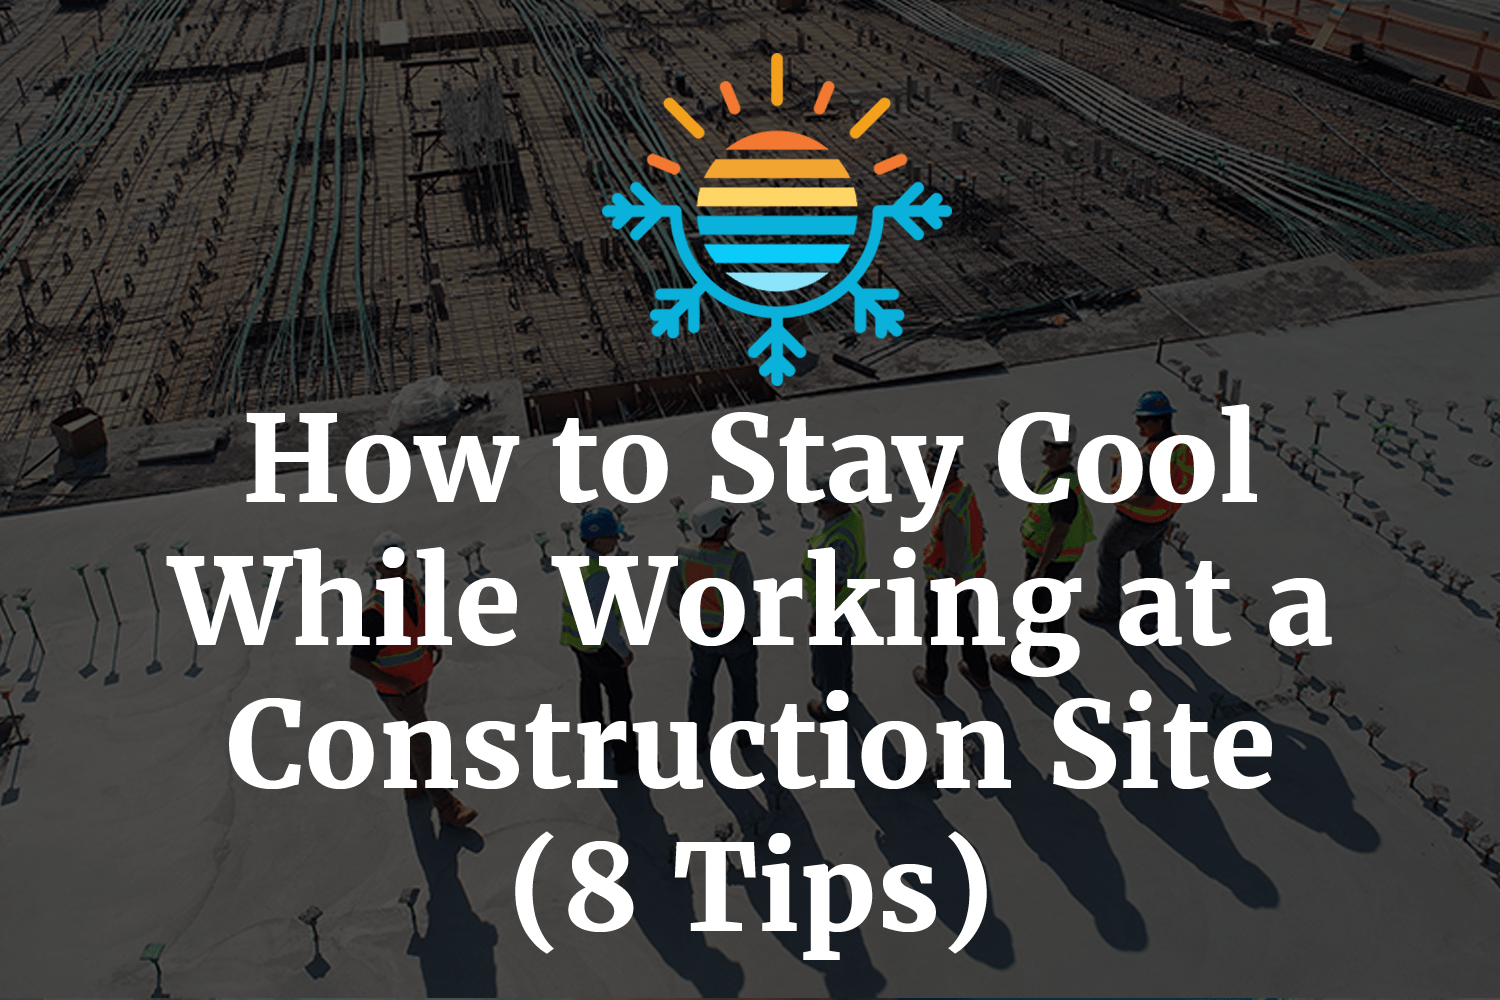 How to Stay Cool While Working at a Construction Site (8 Tips)